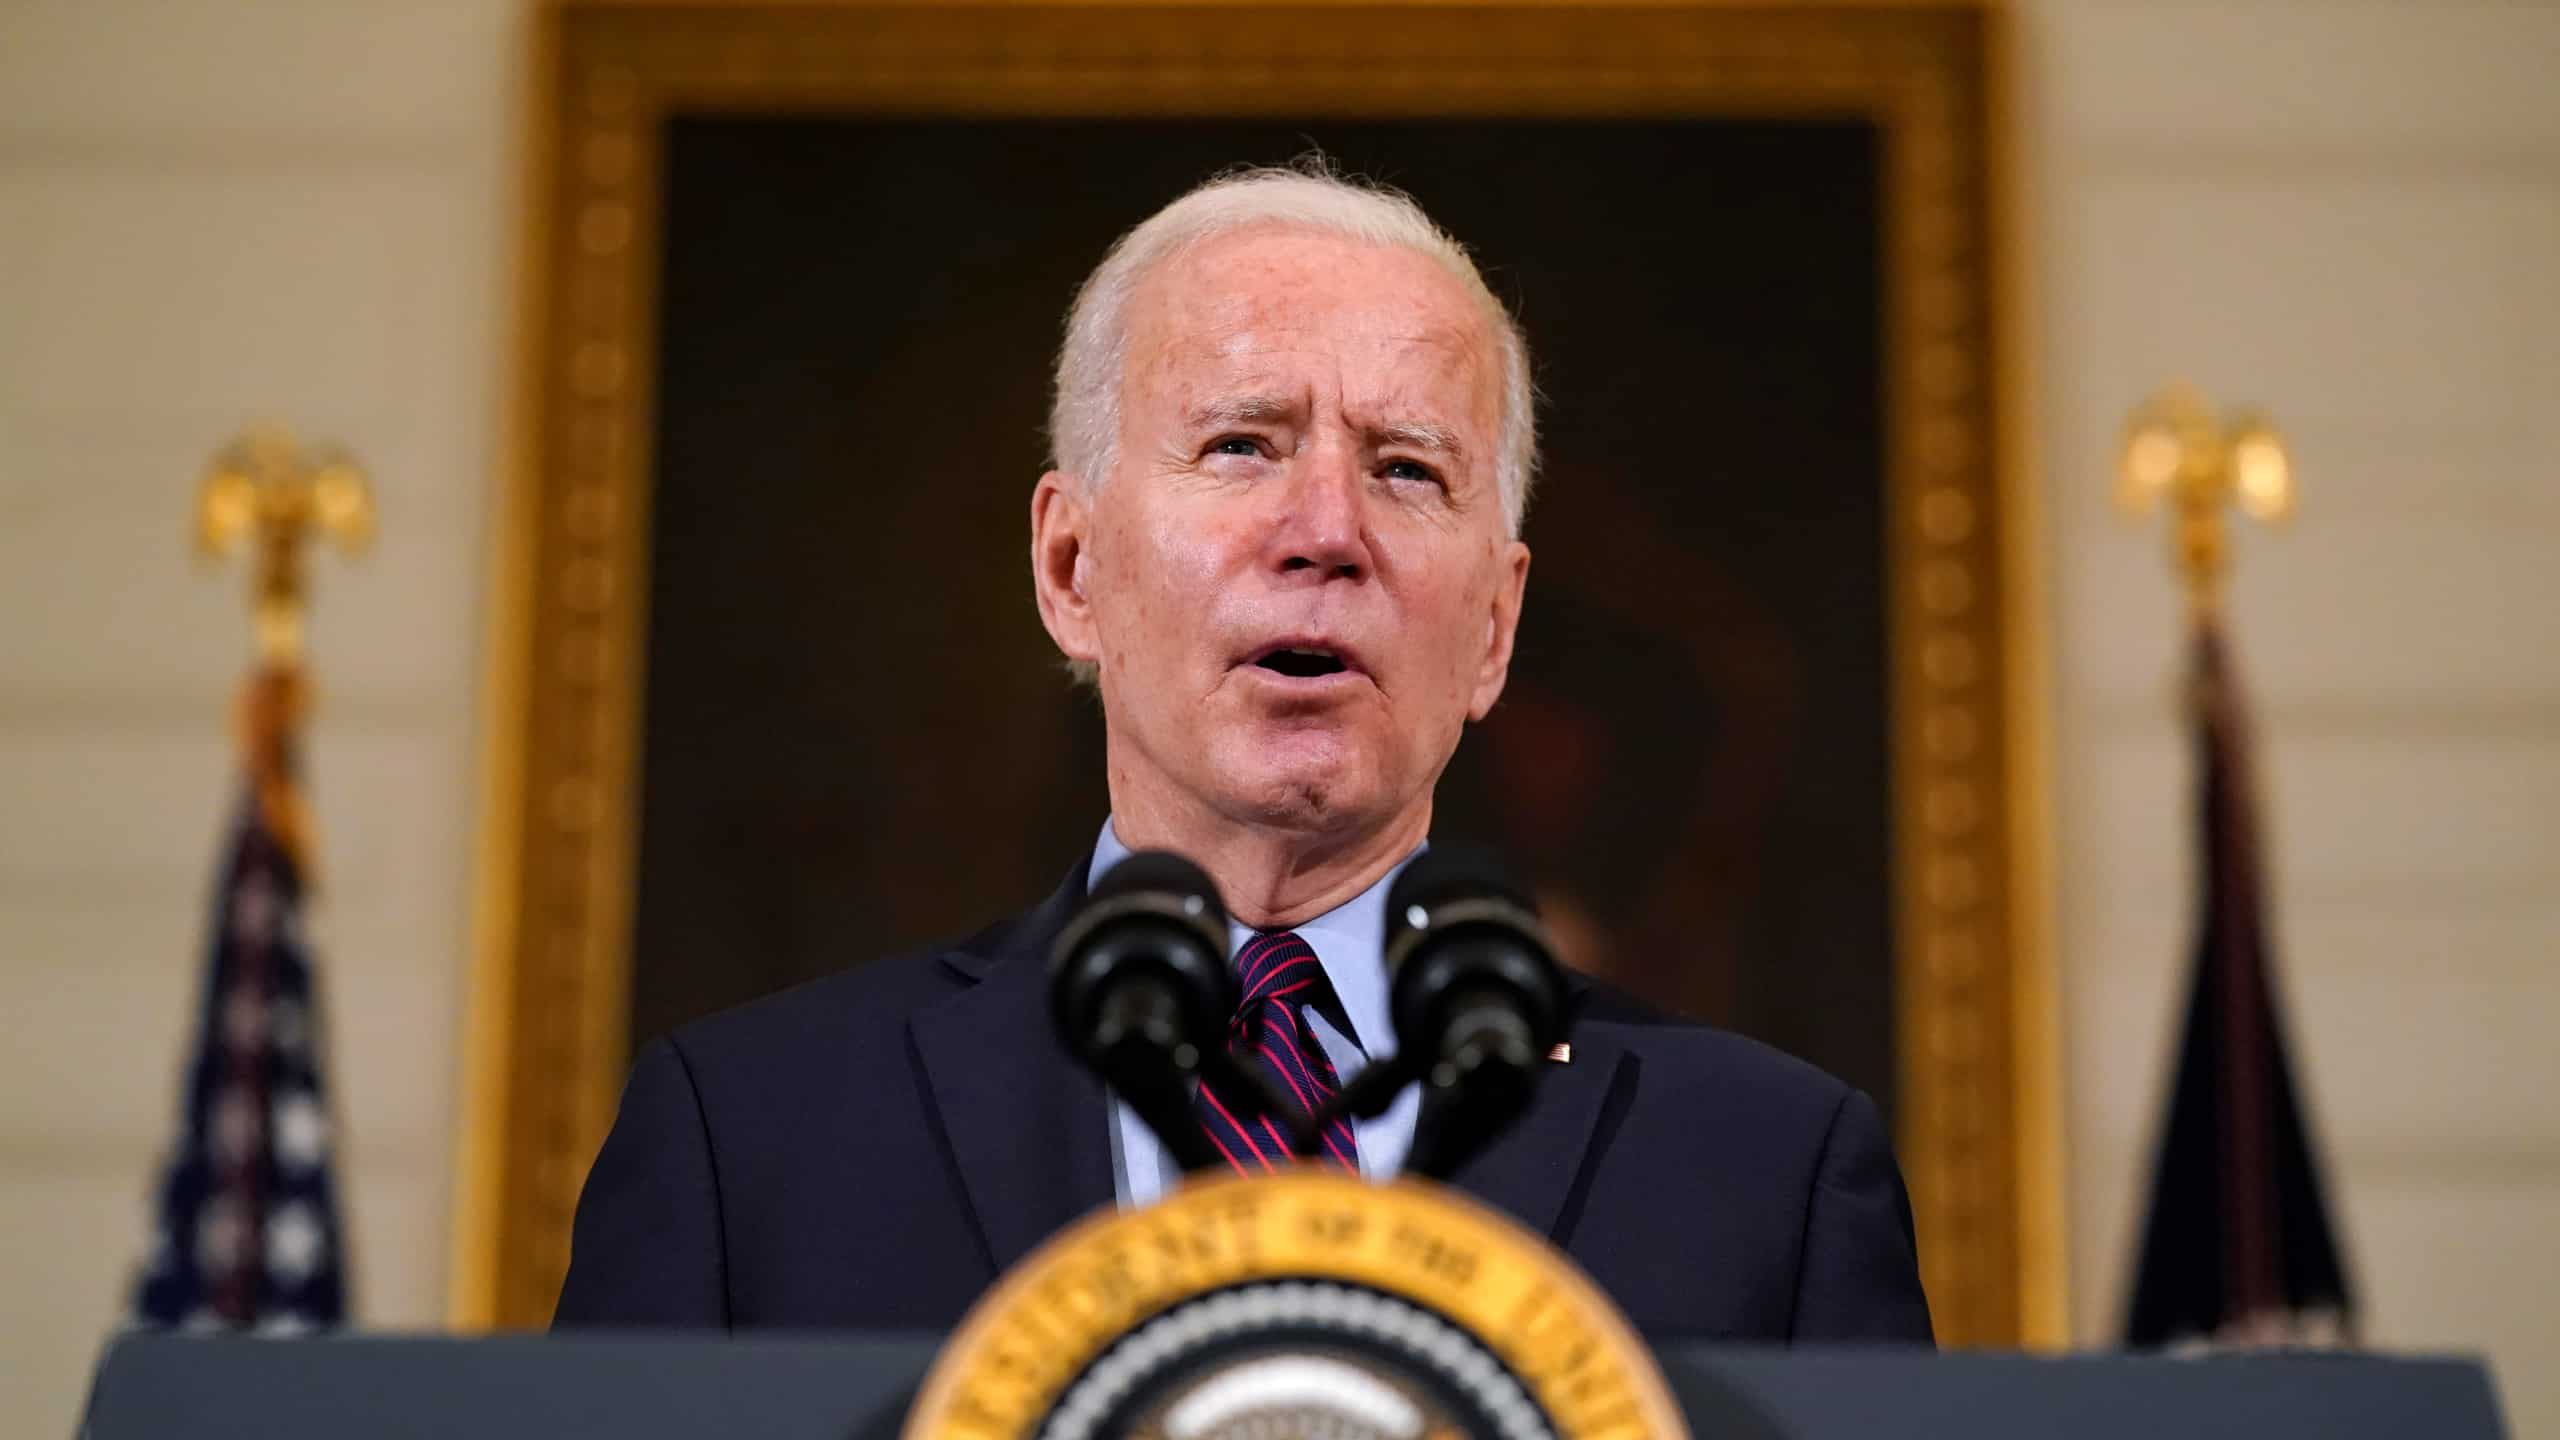 Biden Administration MovesTo Initiate Talks Over Stalled Iran Deal